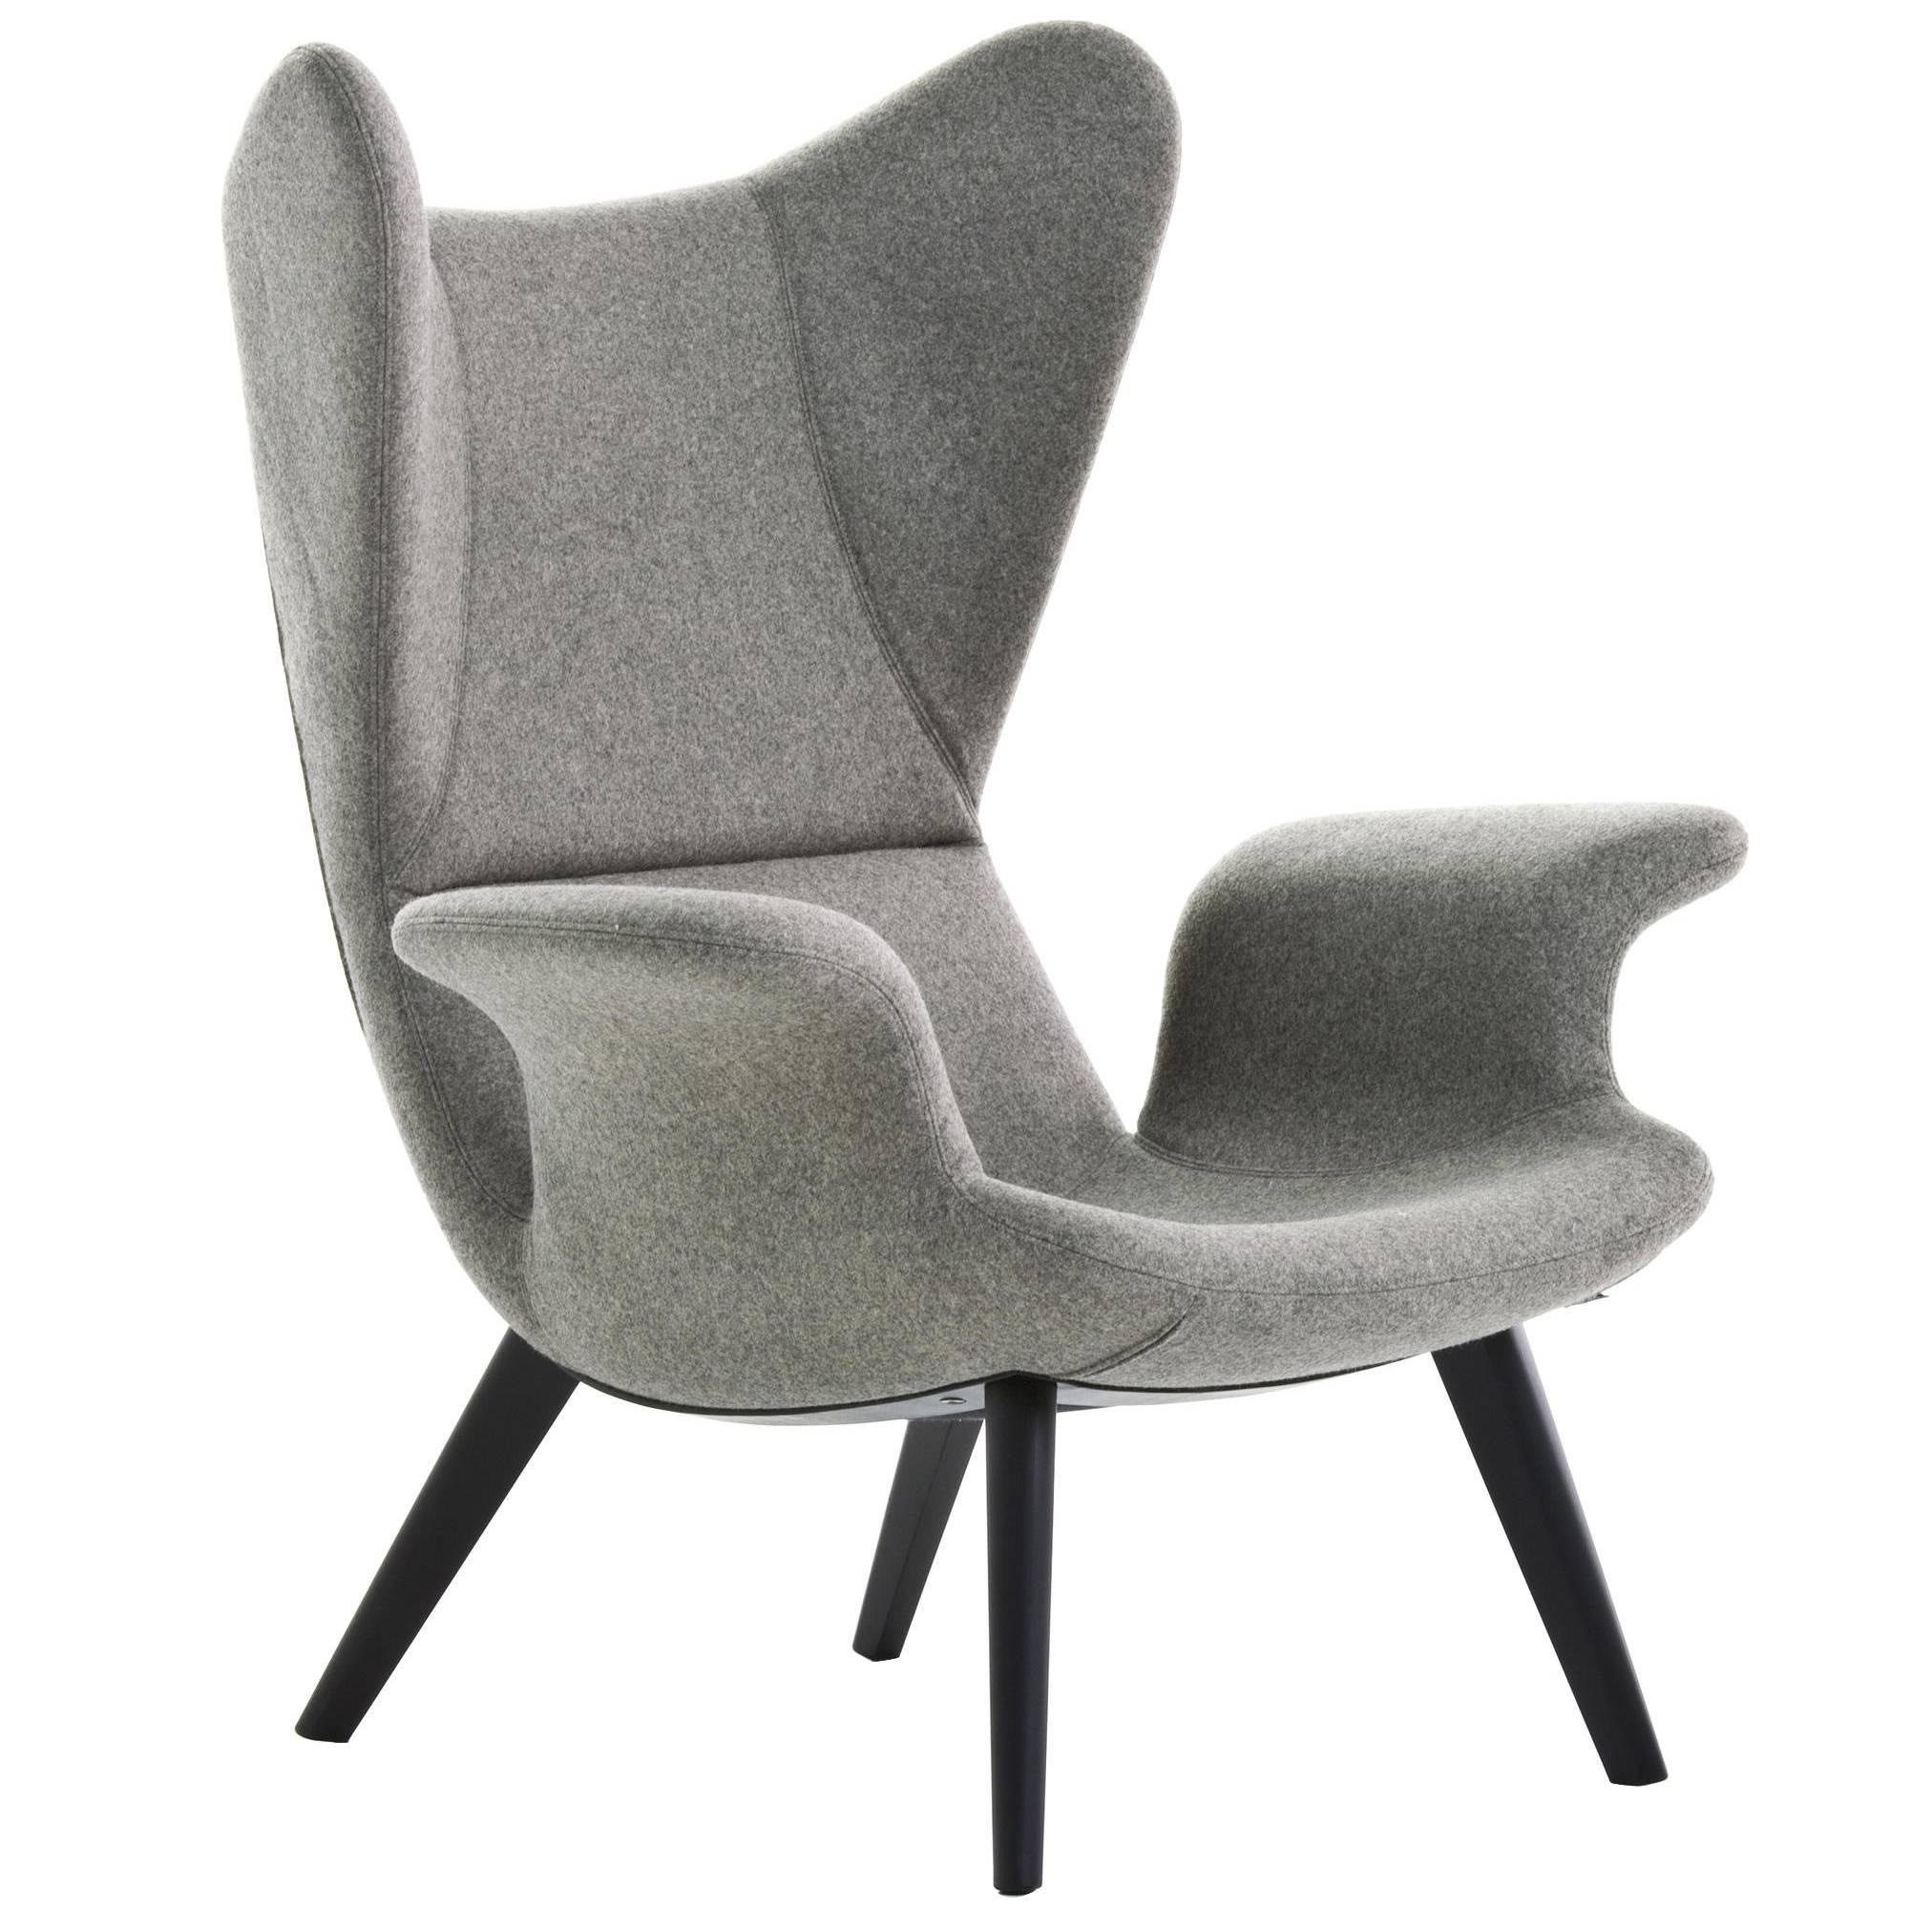 Longwave High Back Armchair By Diesel With Moroso For Sale